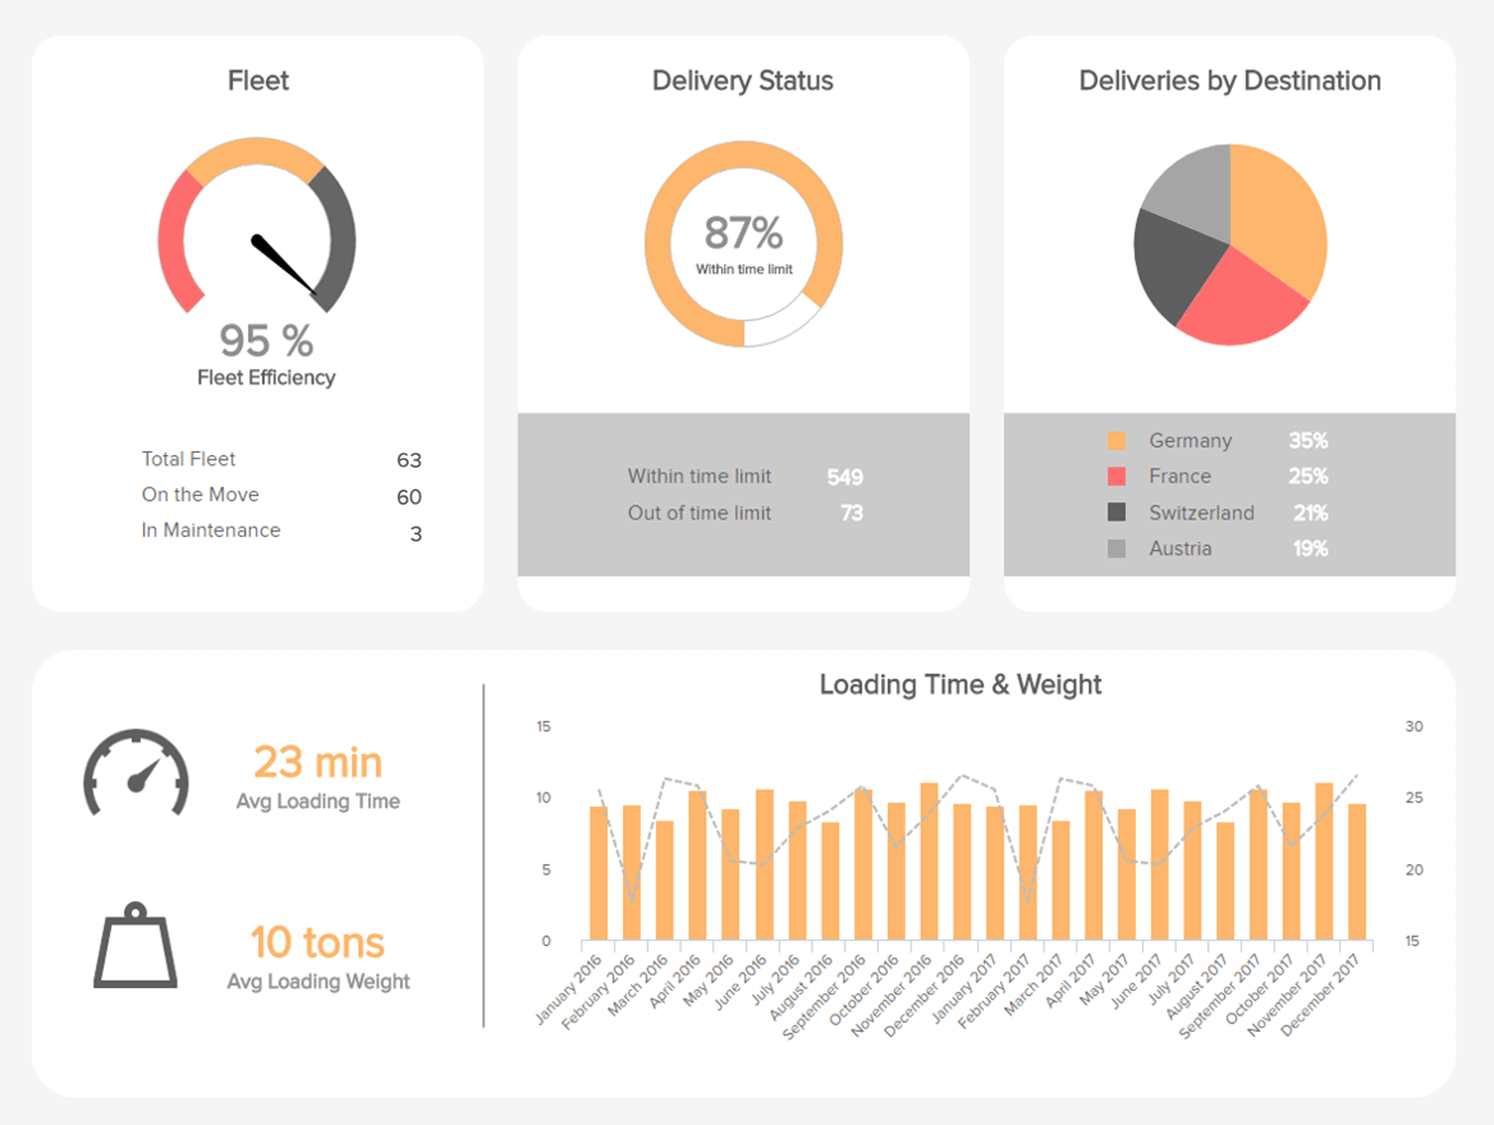 COO dashboard example visualizing essential KPIs when it comes to transportation (delivery status, deliveries by destination, average loading time, etc.)